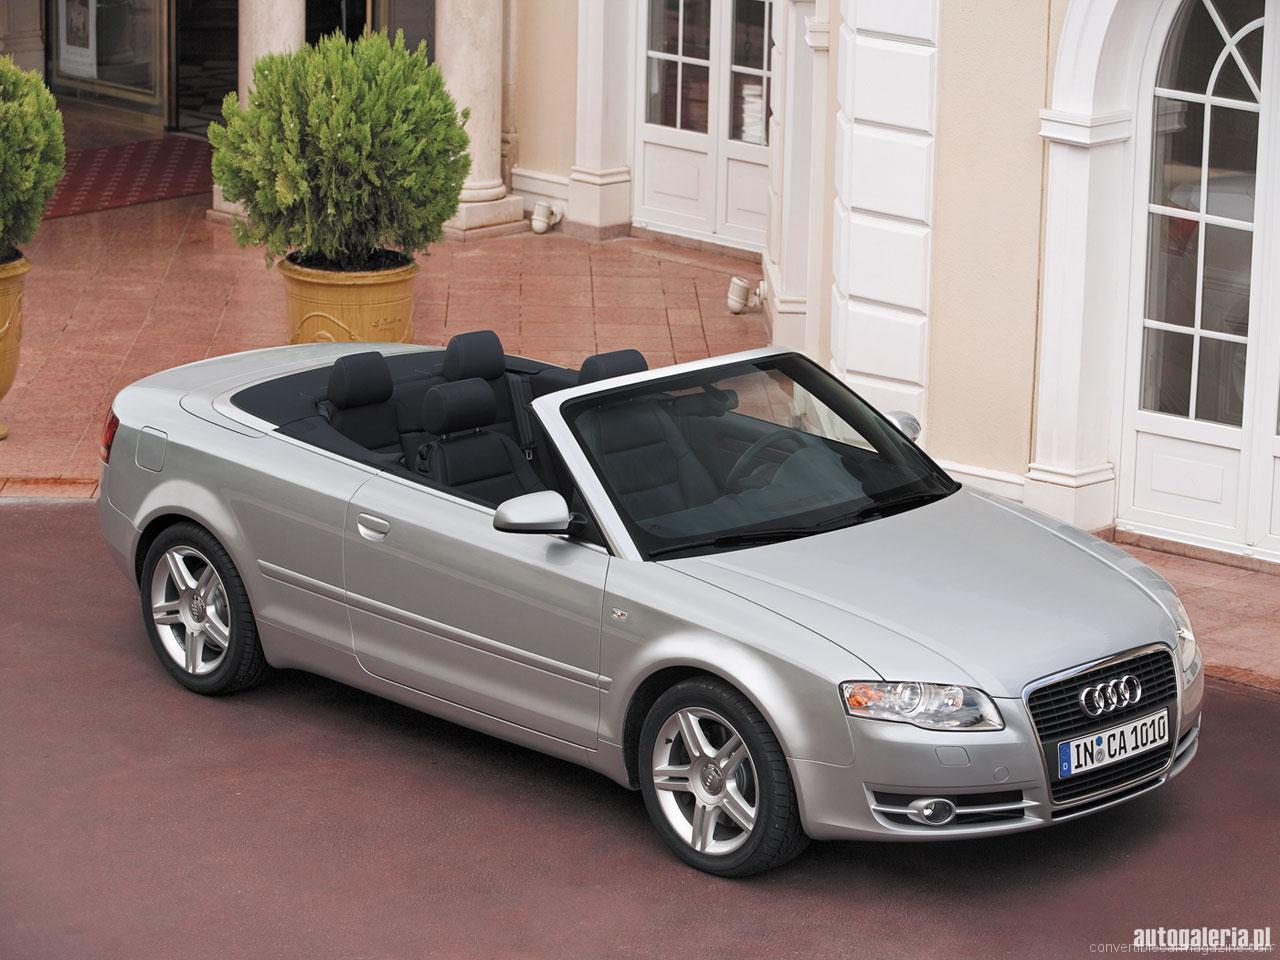 Audi A4 Cabriolet Buying Guide